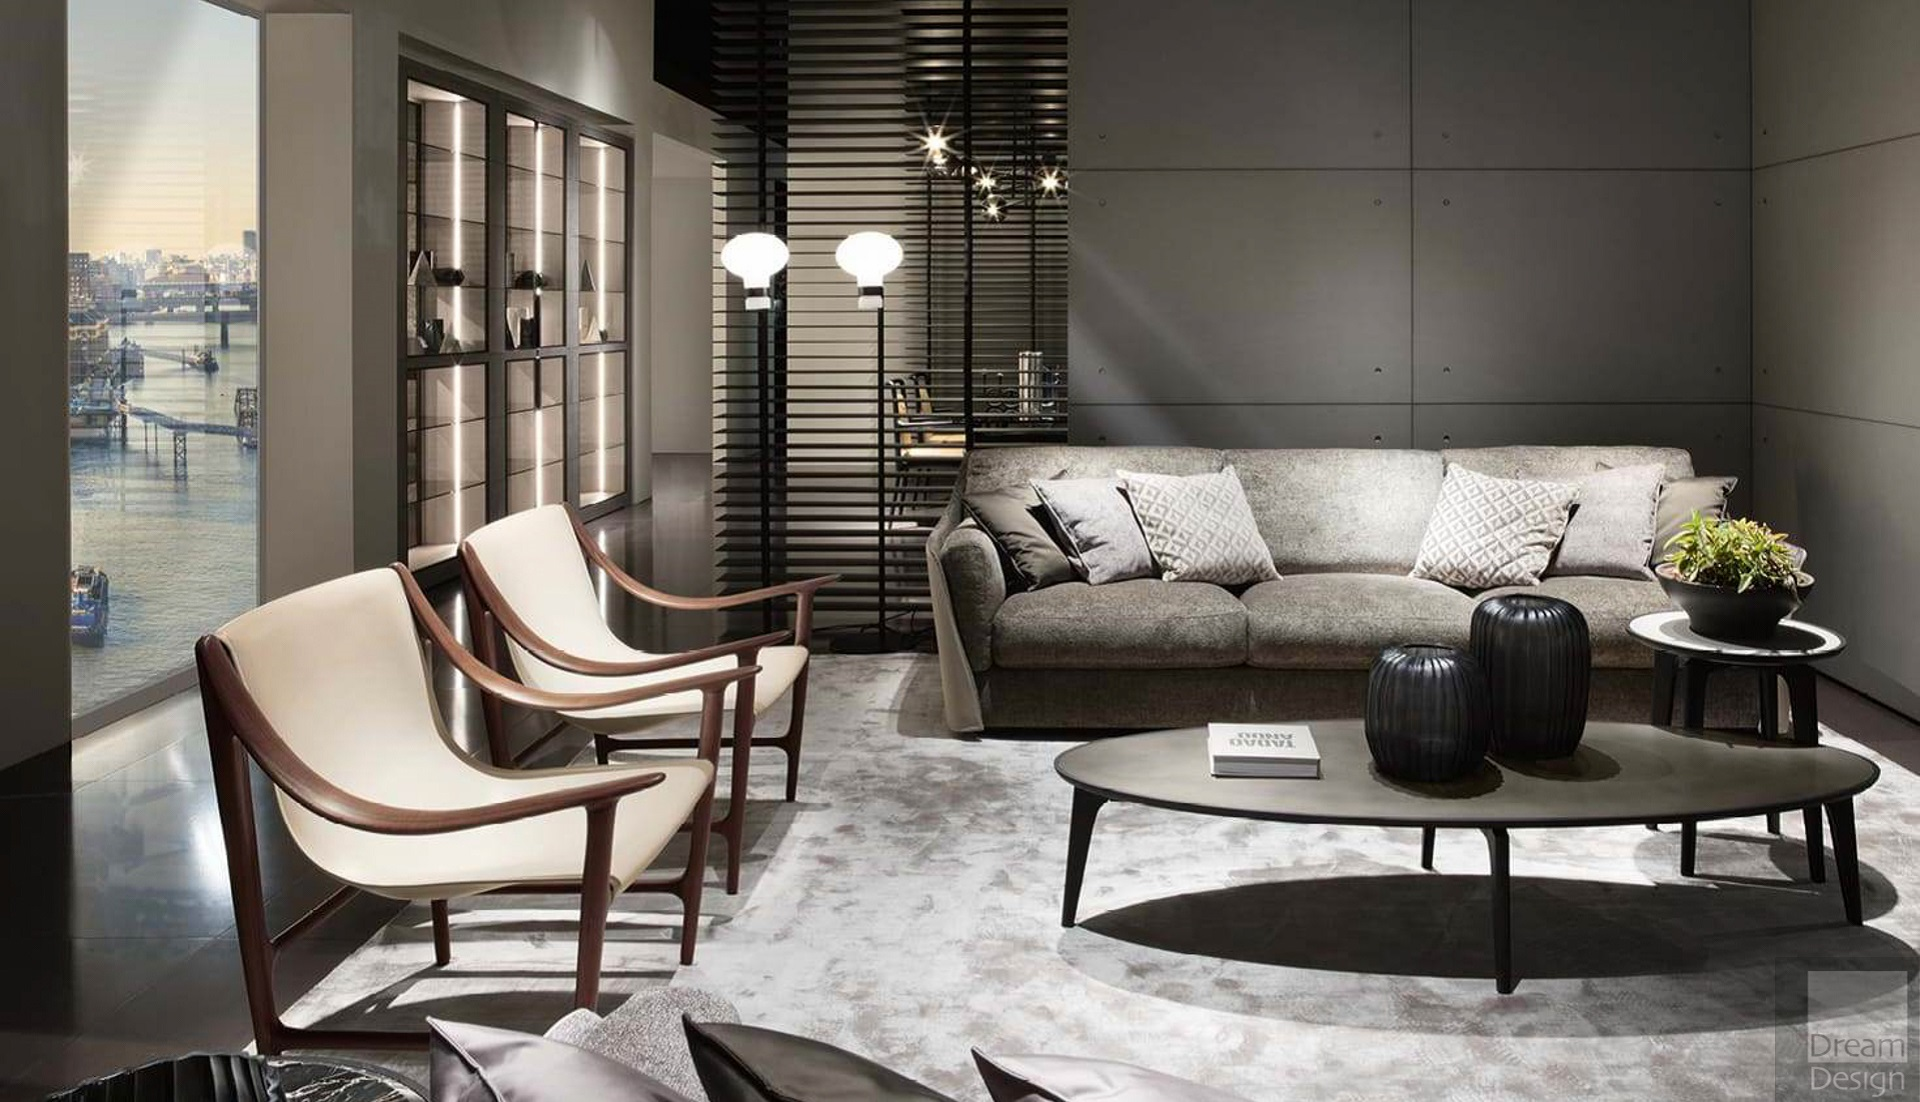 Giorgetti Vittoria Sofa Dream Design Interiors Ltd